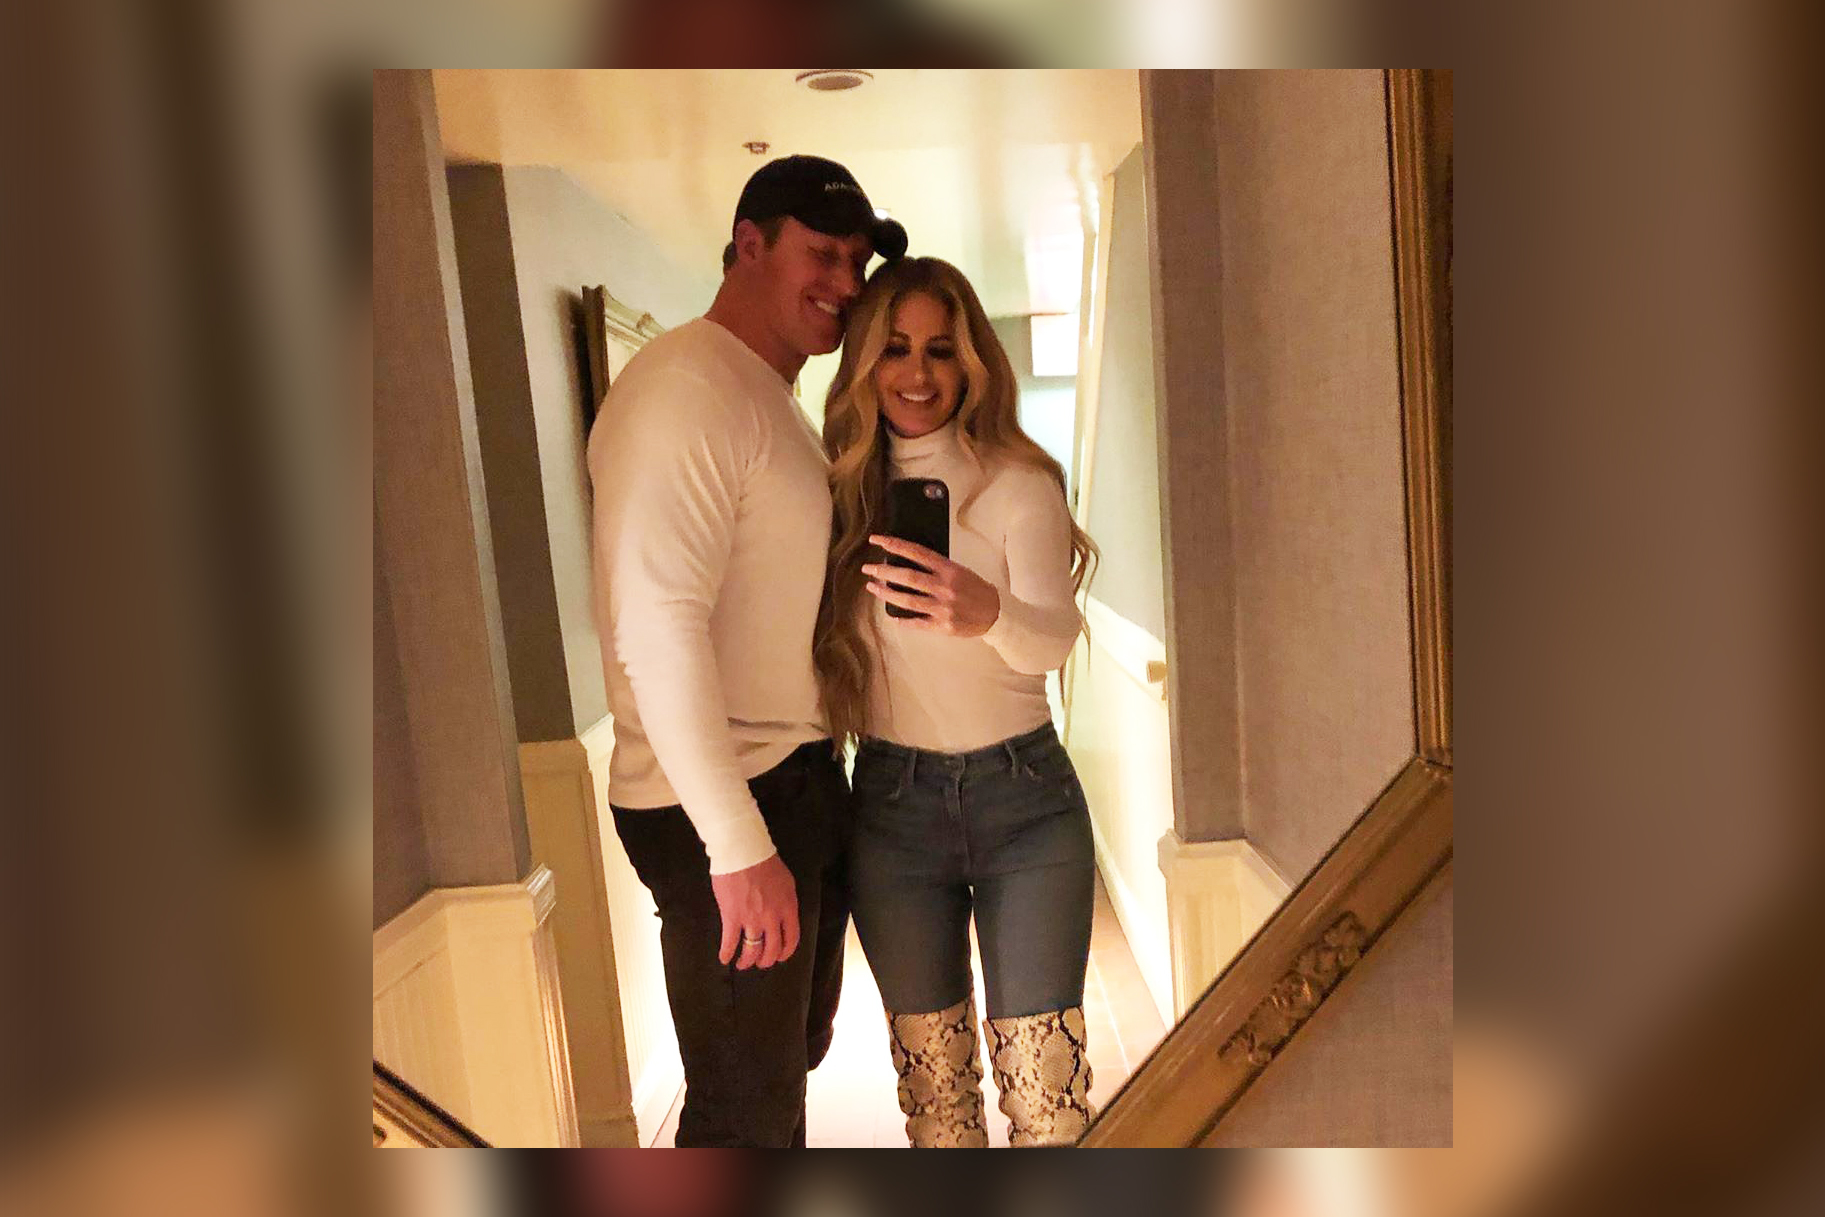 Kim Zolciak Biermann Kroy Home